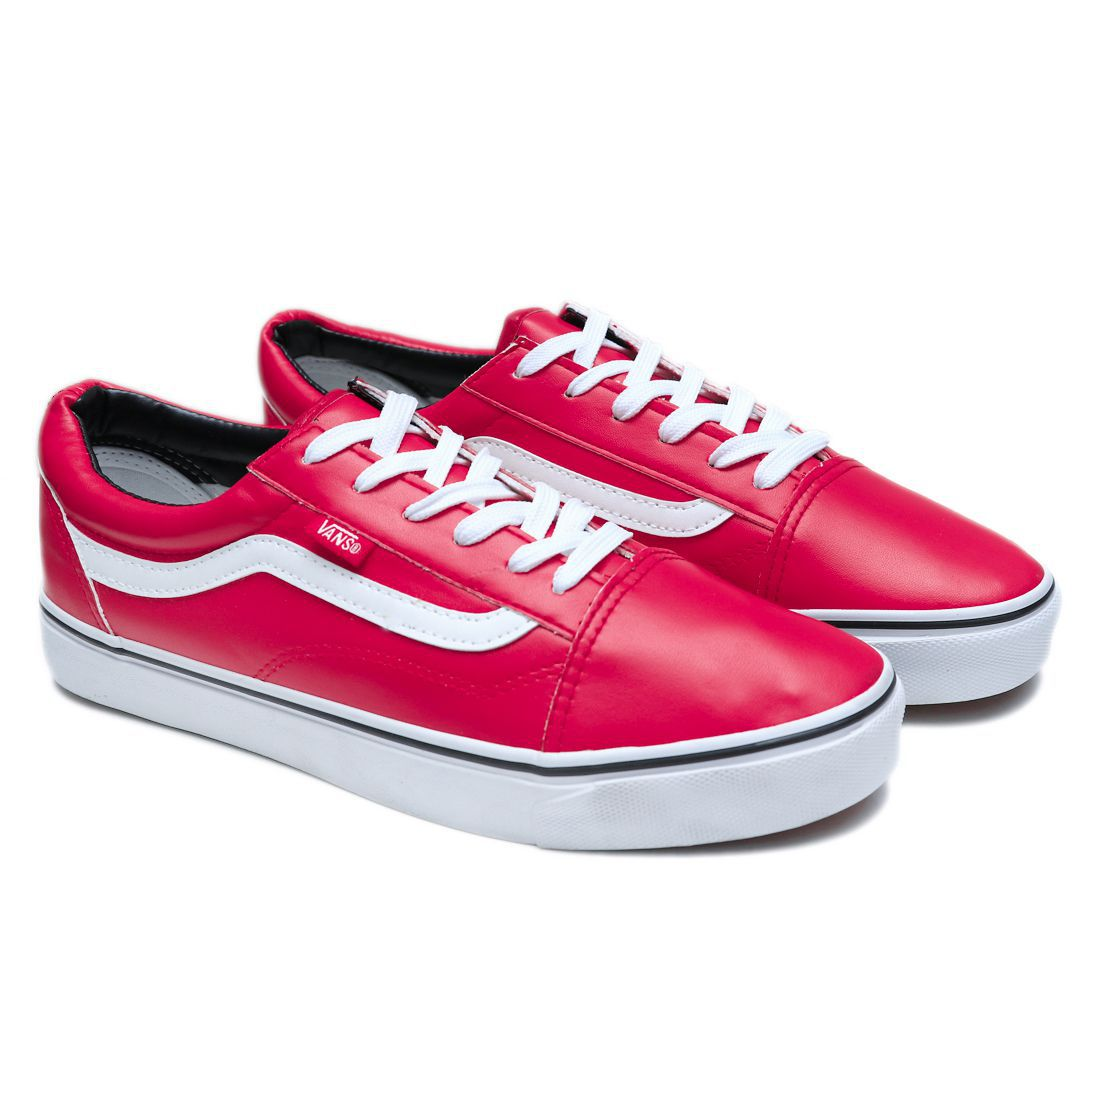 VANS OLD SKOOL FASHION LEATHER Sneakers Red Casual Shoes - Buy VANS OLD  SKOOL FASHION LEATHER Sneakers Red Casual Shoes Online at Best Prices in  India on ... 7f32dbe9b